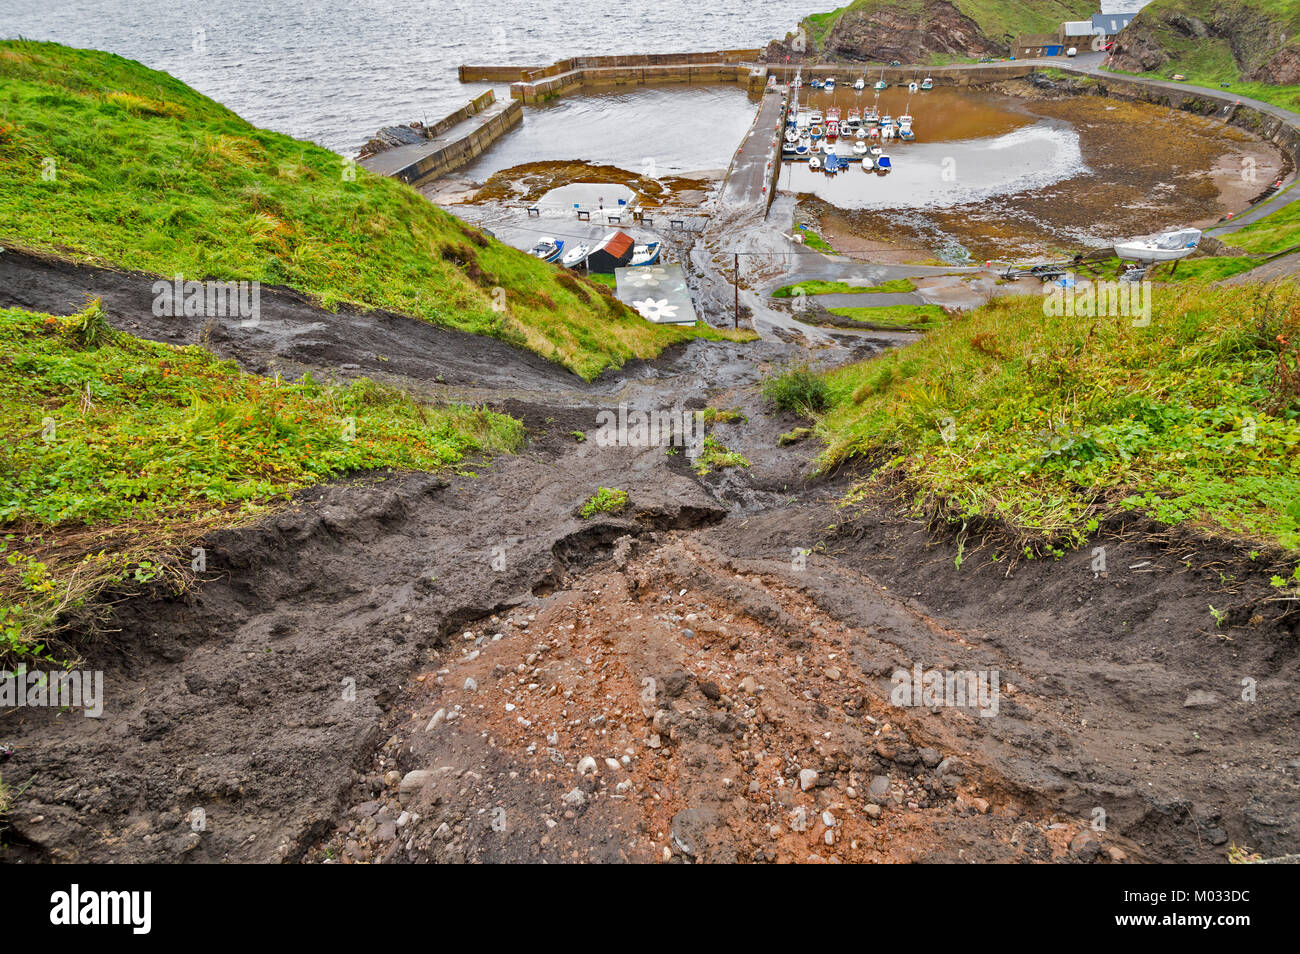 PORTKNOCKIE MORAY SCOTLAND LANDSLIPS FROM CLIFFS INTO THE HARBOUR AREA DUE TO SEVERE RAINFALL SEPTEMBER 2017 NO.2 - Stock Image